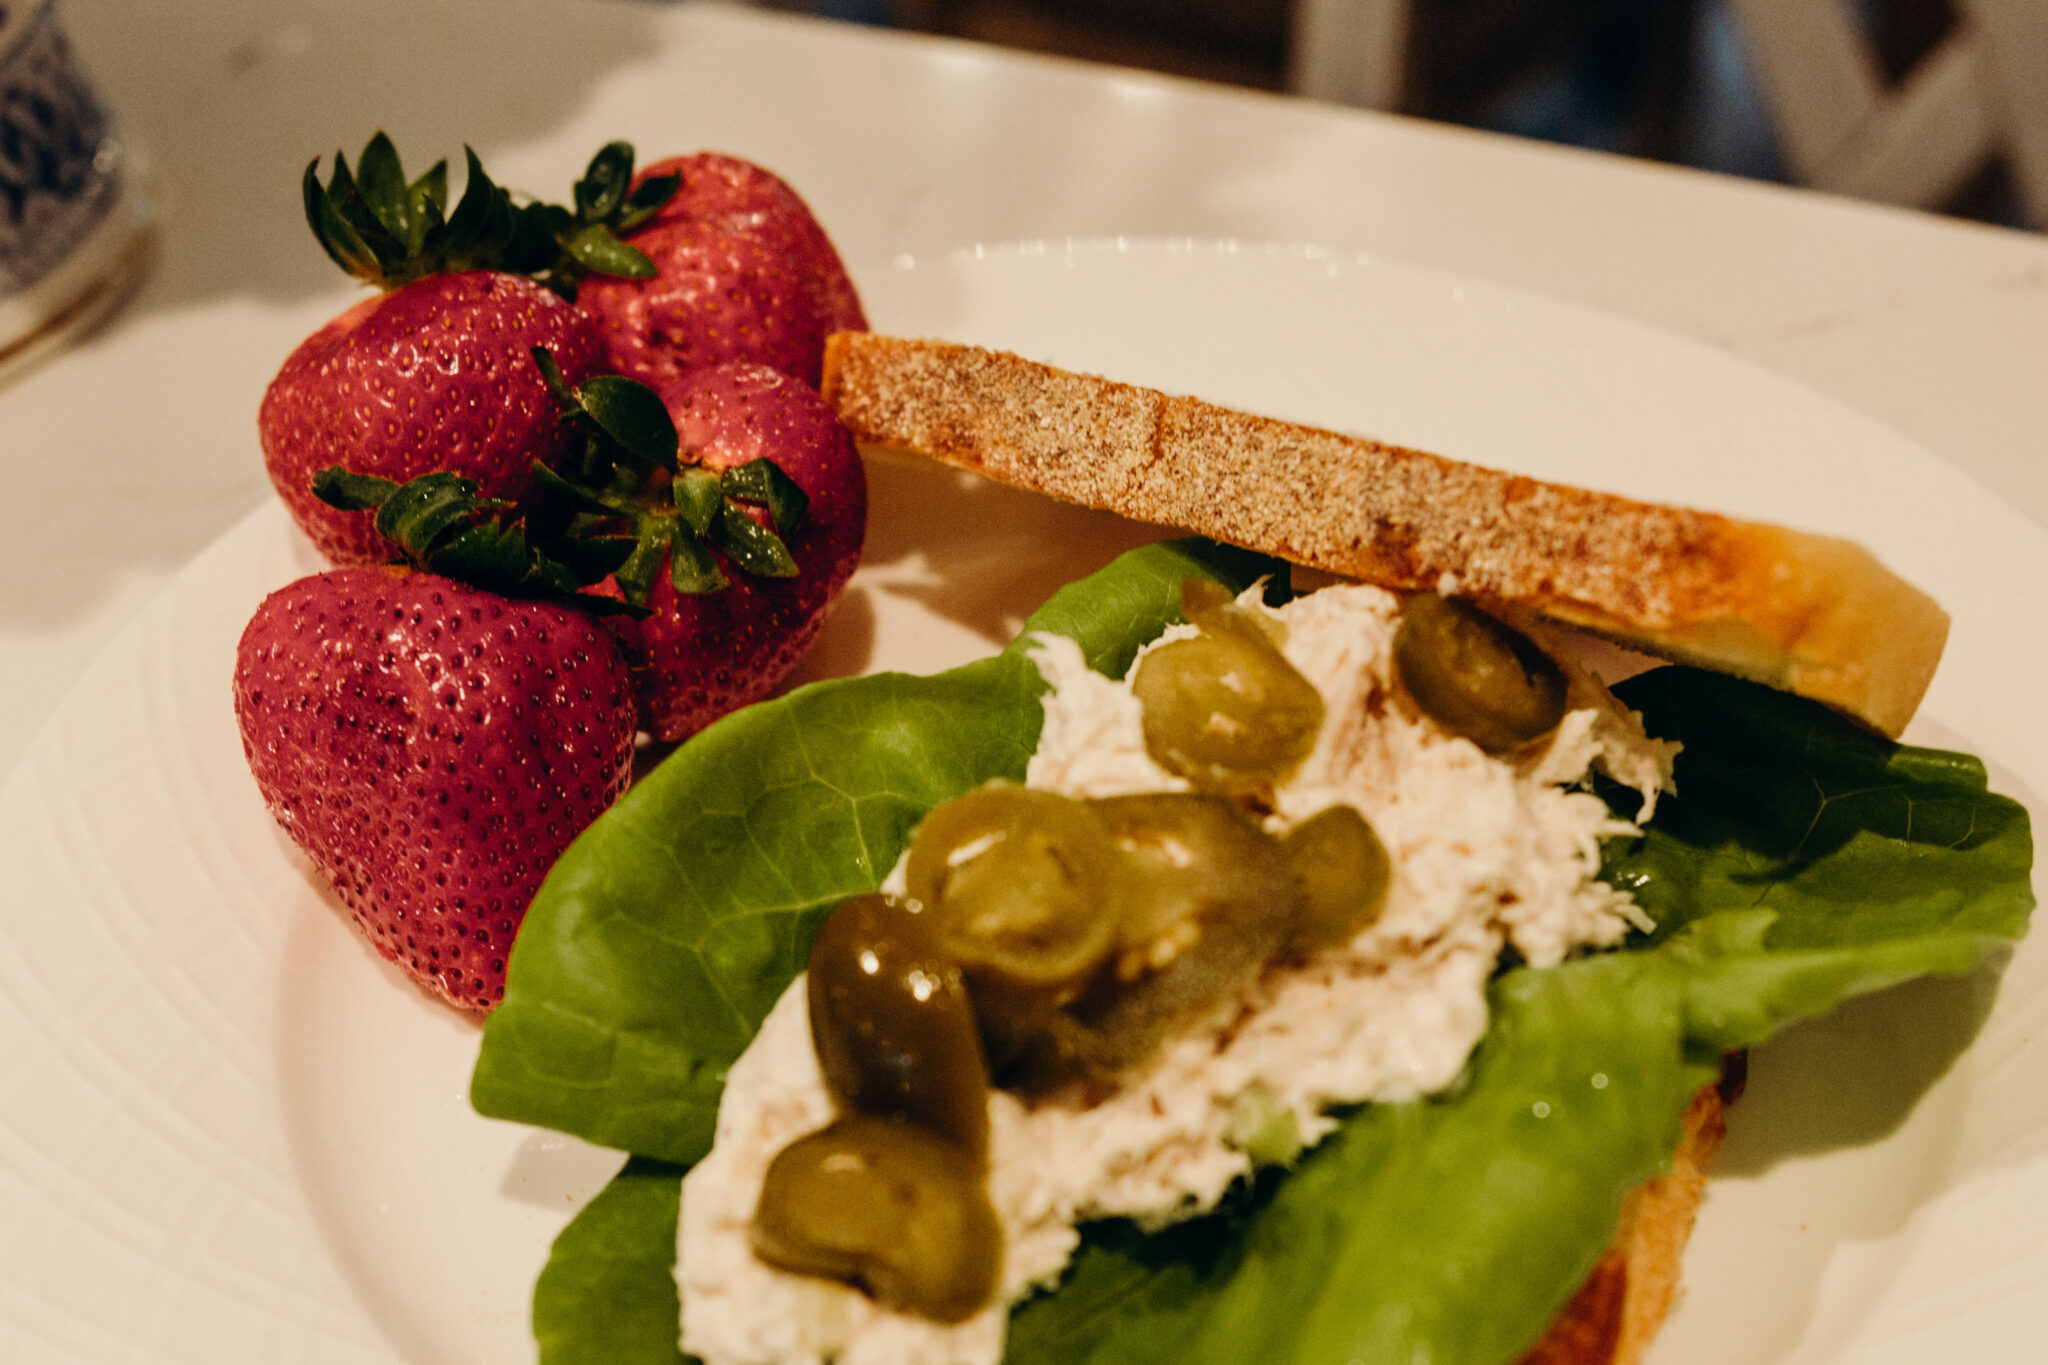 Chicken Salad Sandwich with Jalapenos on Sourdough and Side of Strawberries